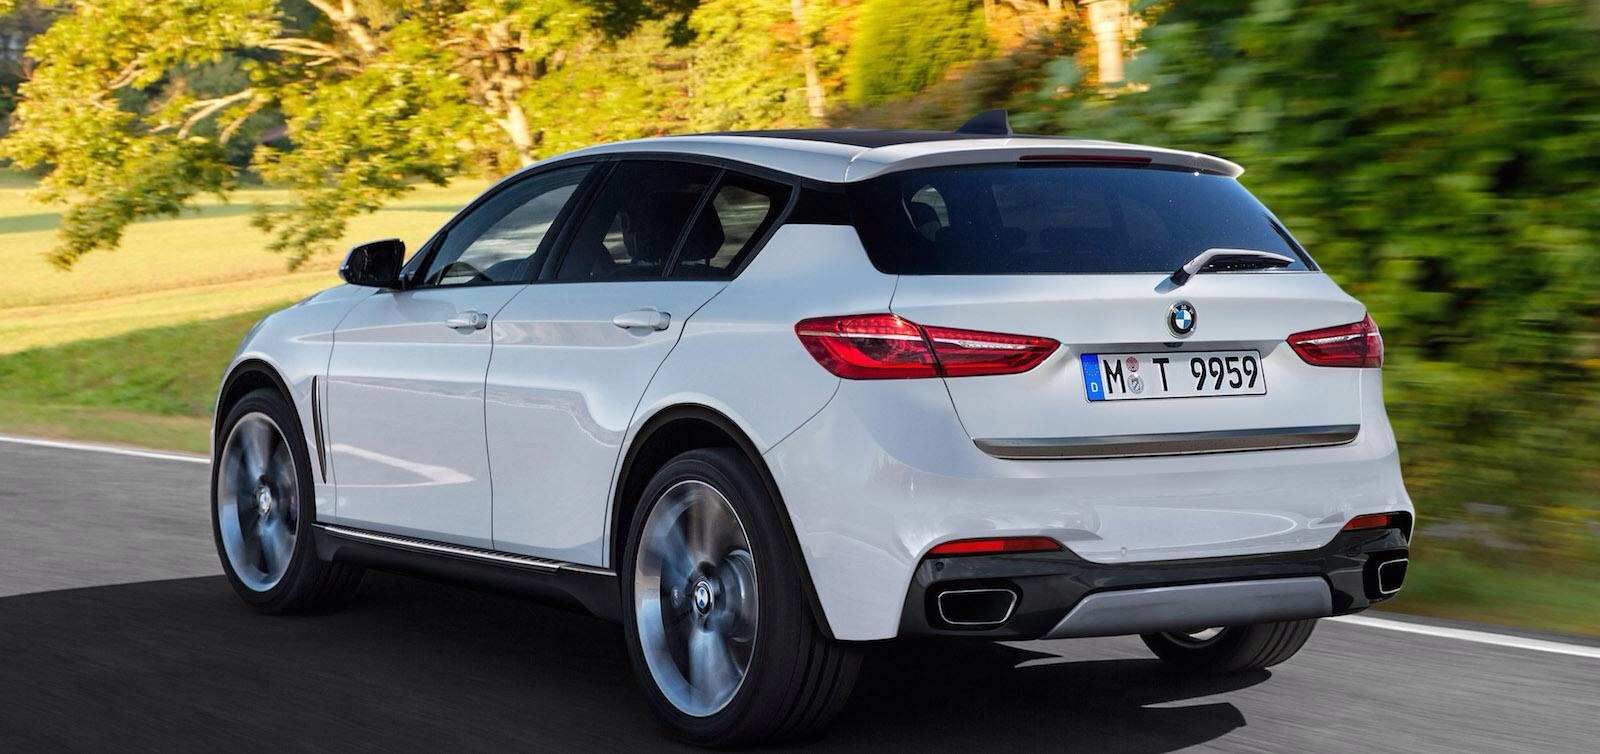 22 The Best Bmw Urban Cross 2020 Release Date